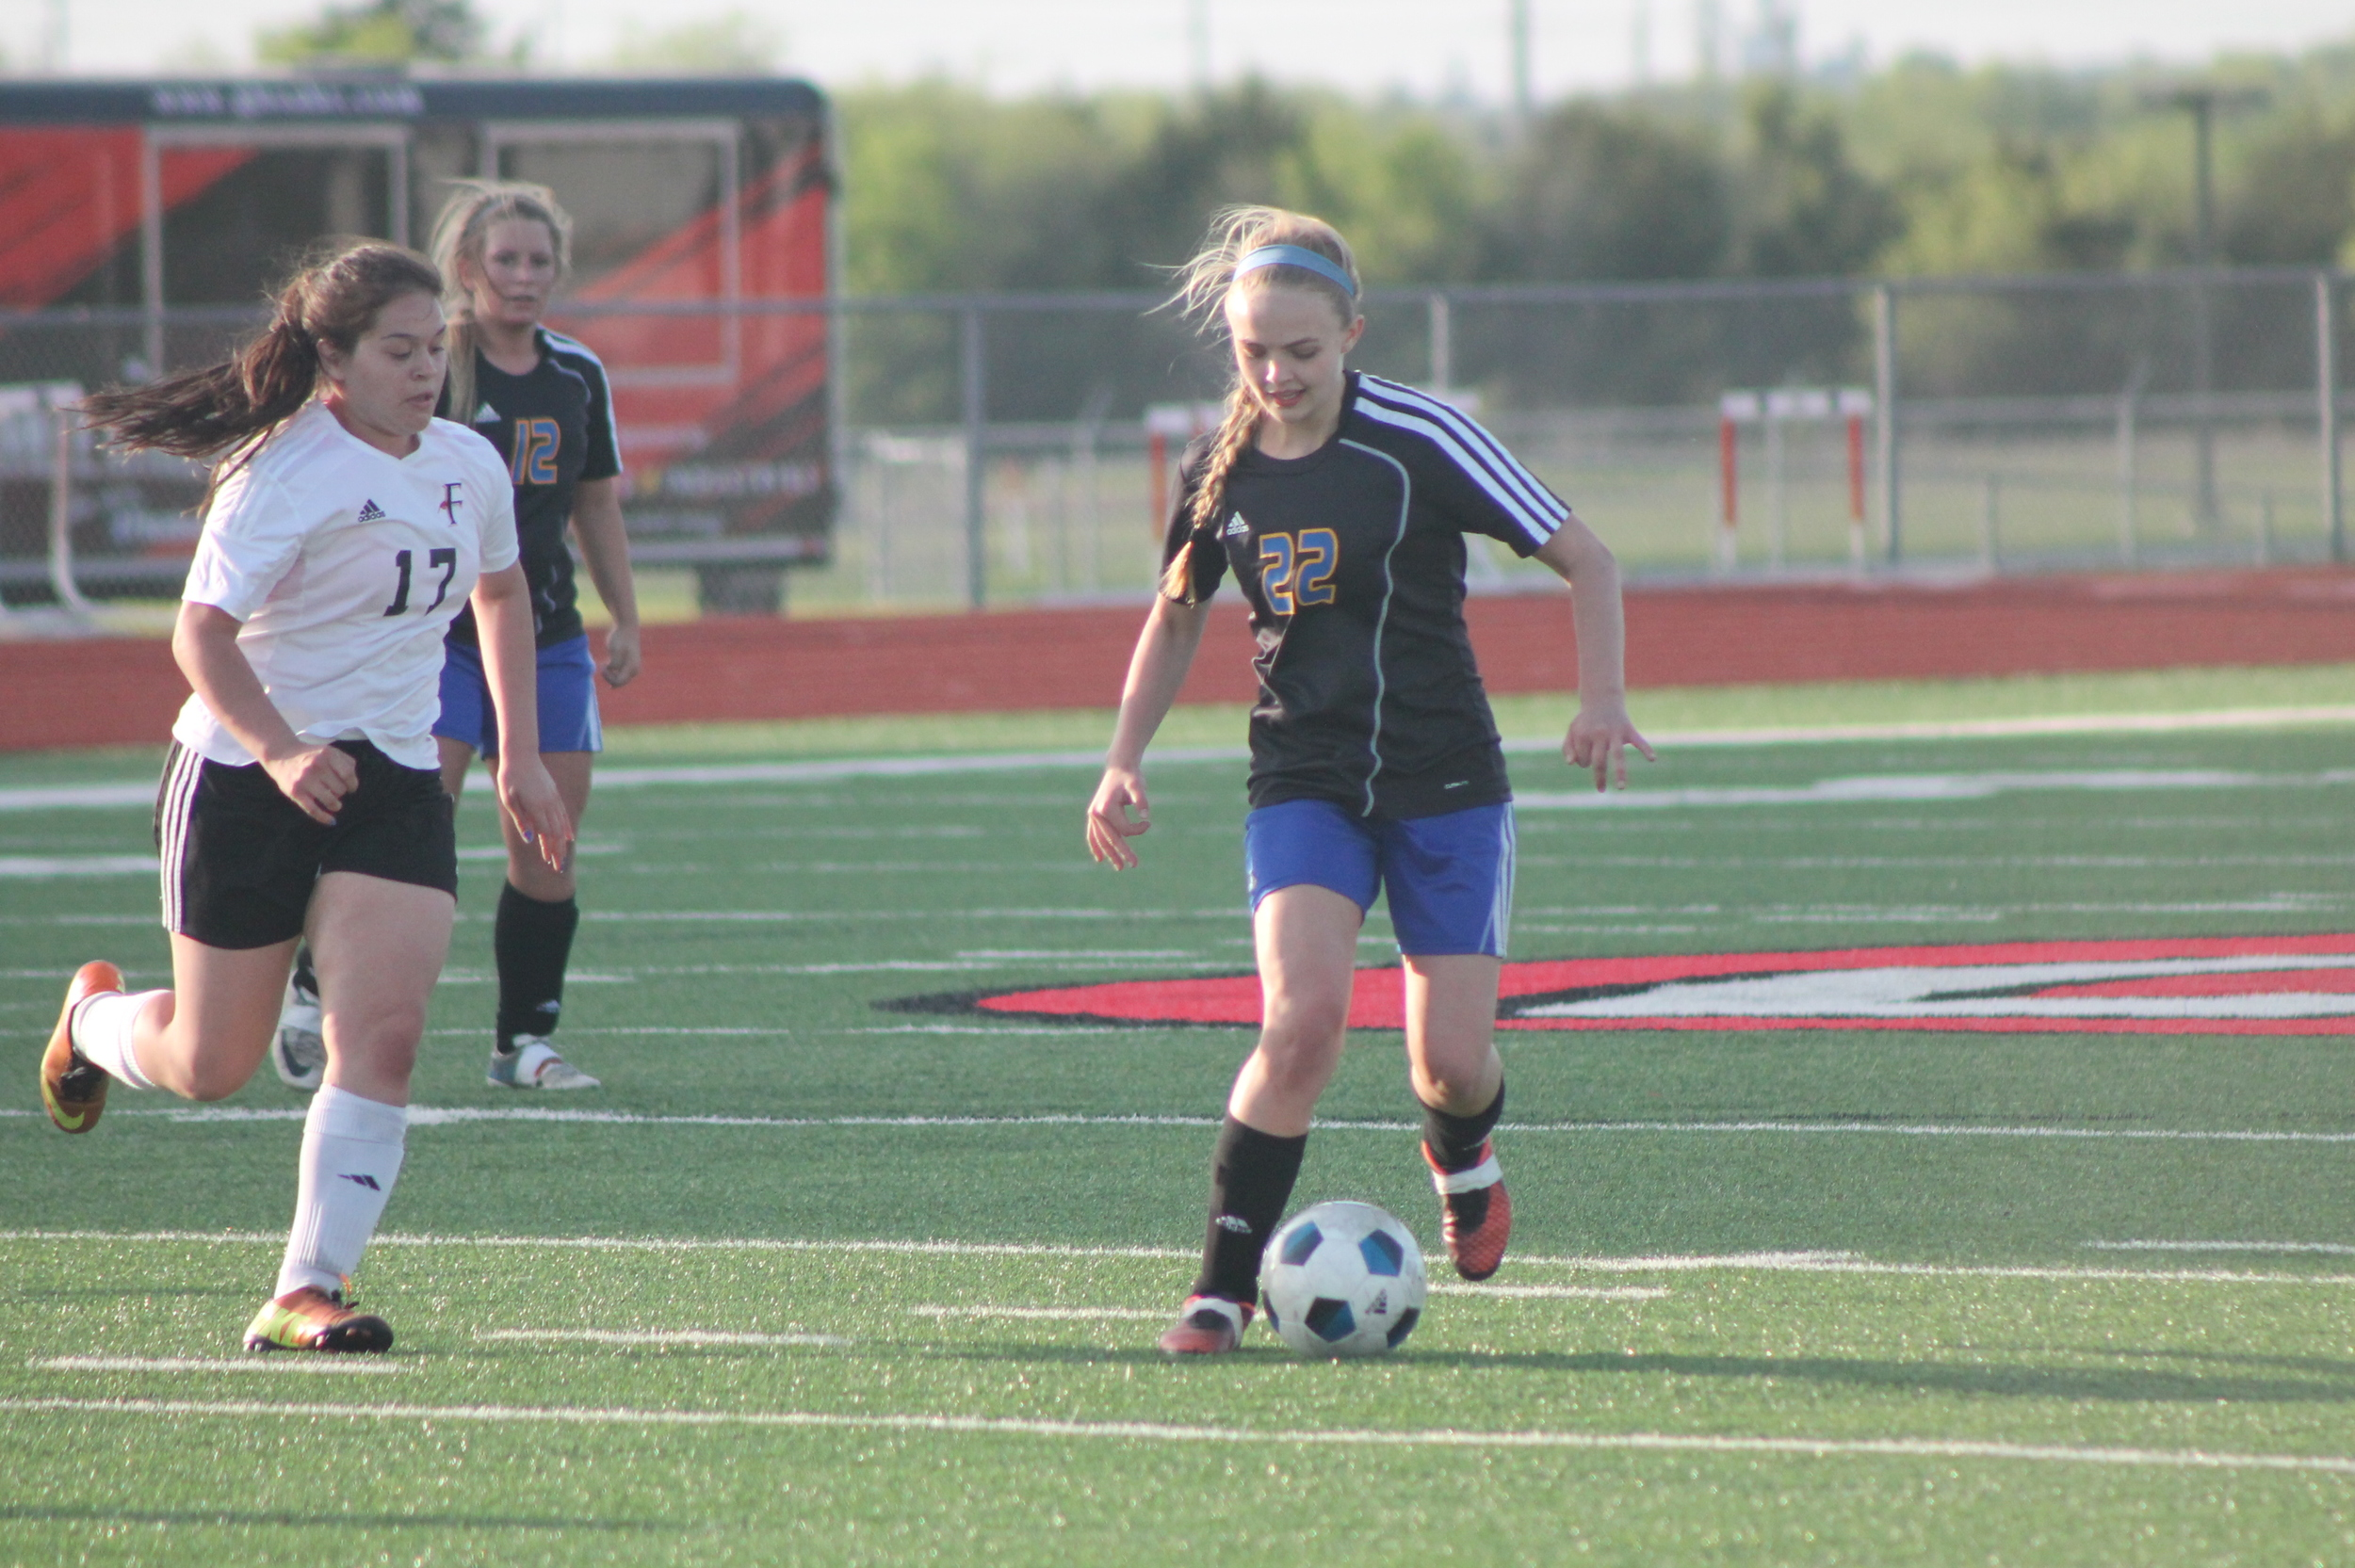 (Photo by Adam Routon) Katie Kilcrease kills another Ferris offensive attempt.